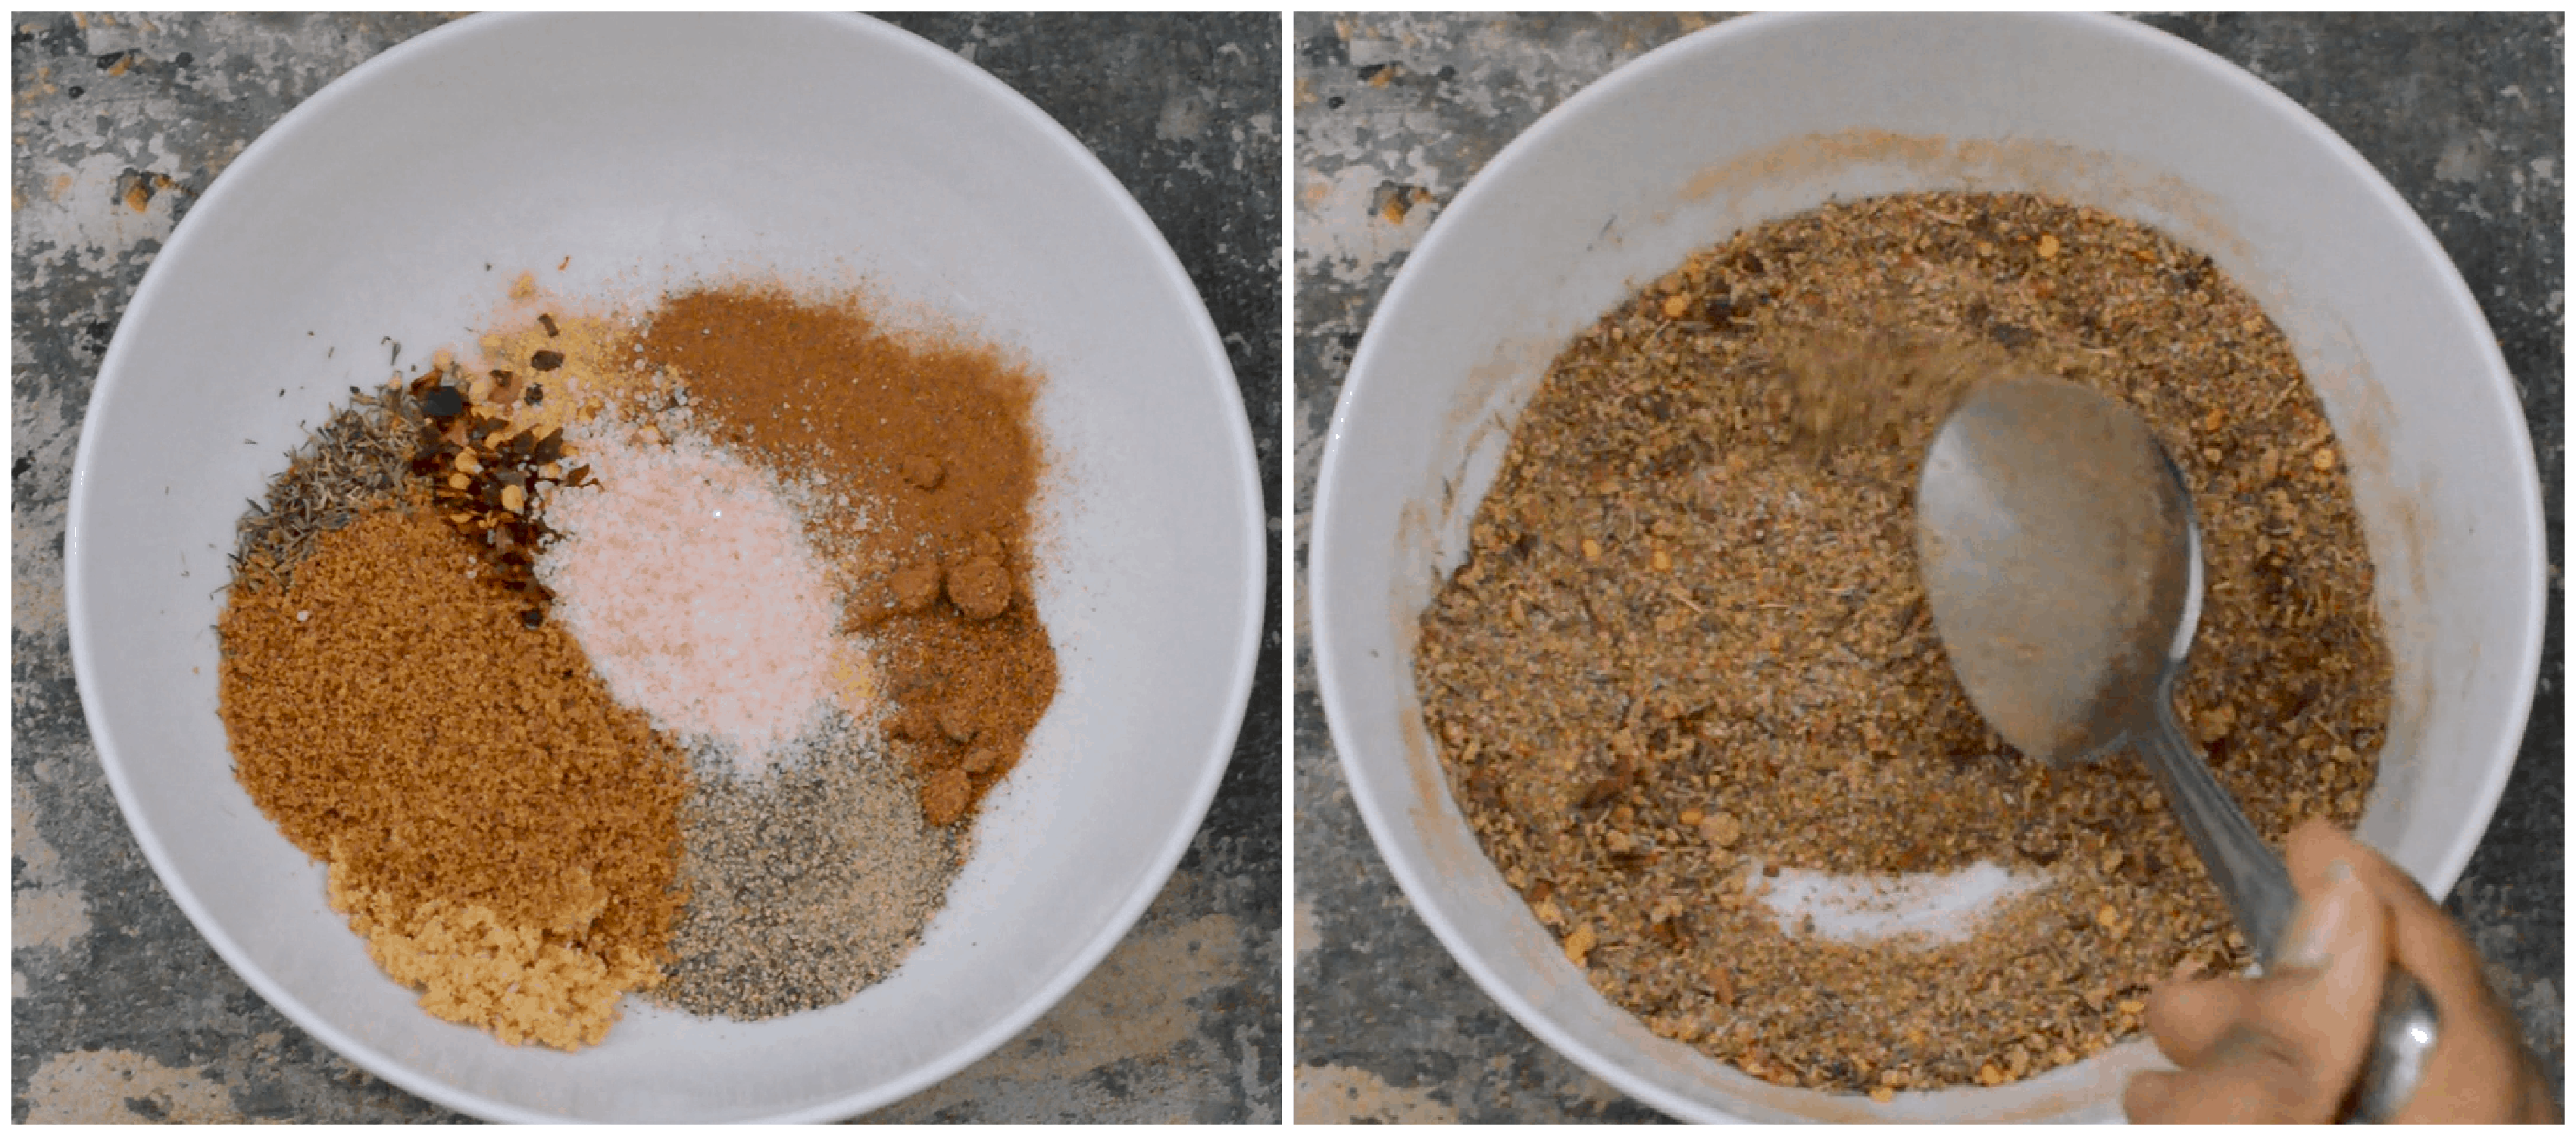 steps1-2 mixing the spices